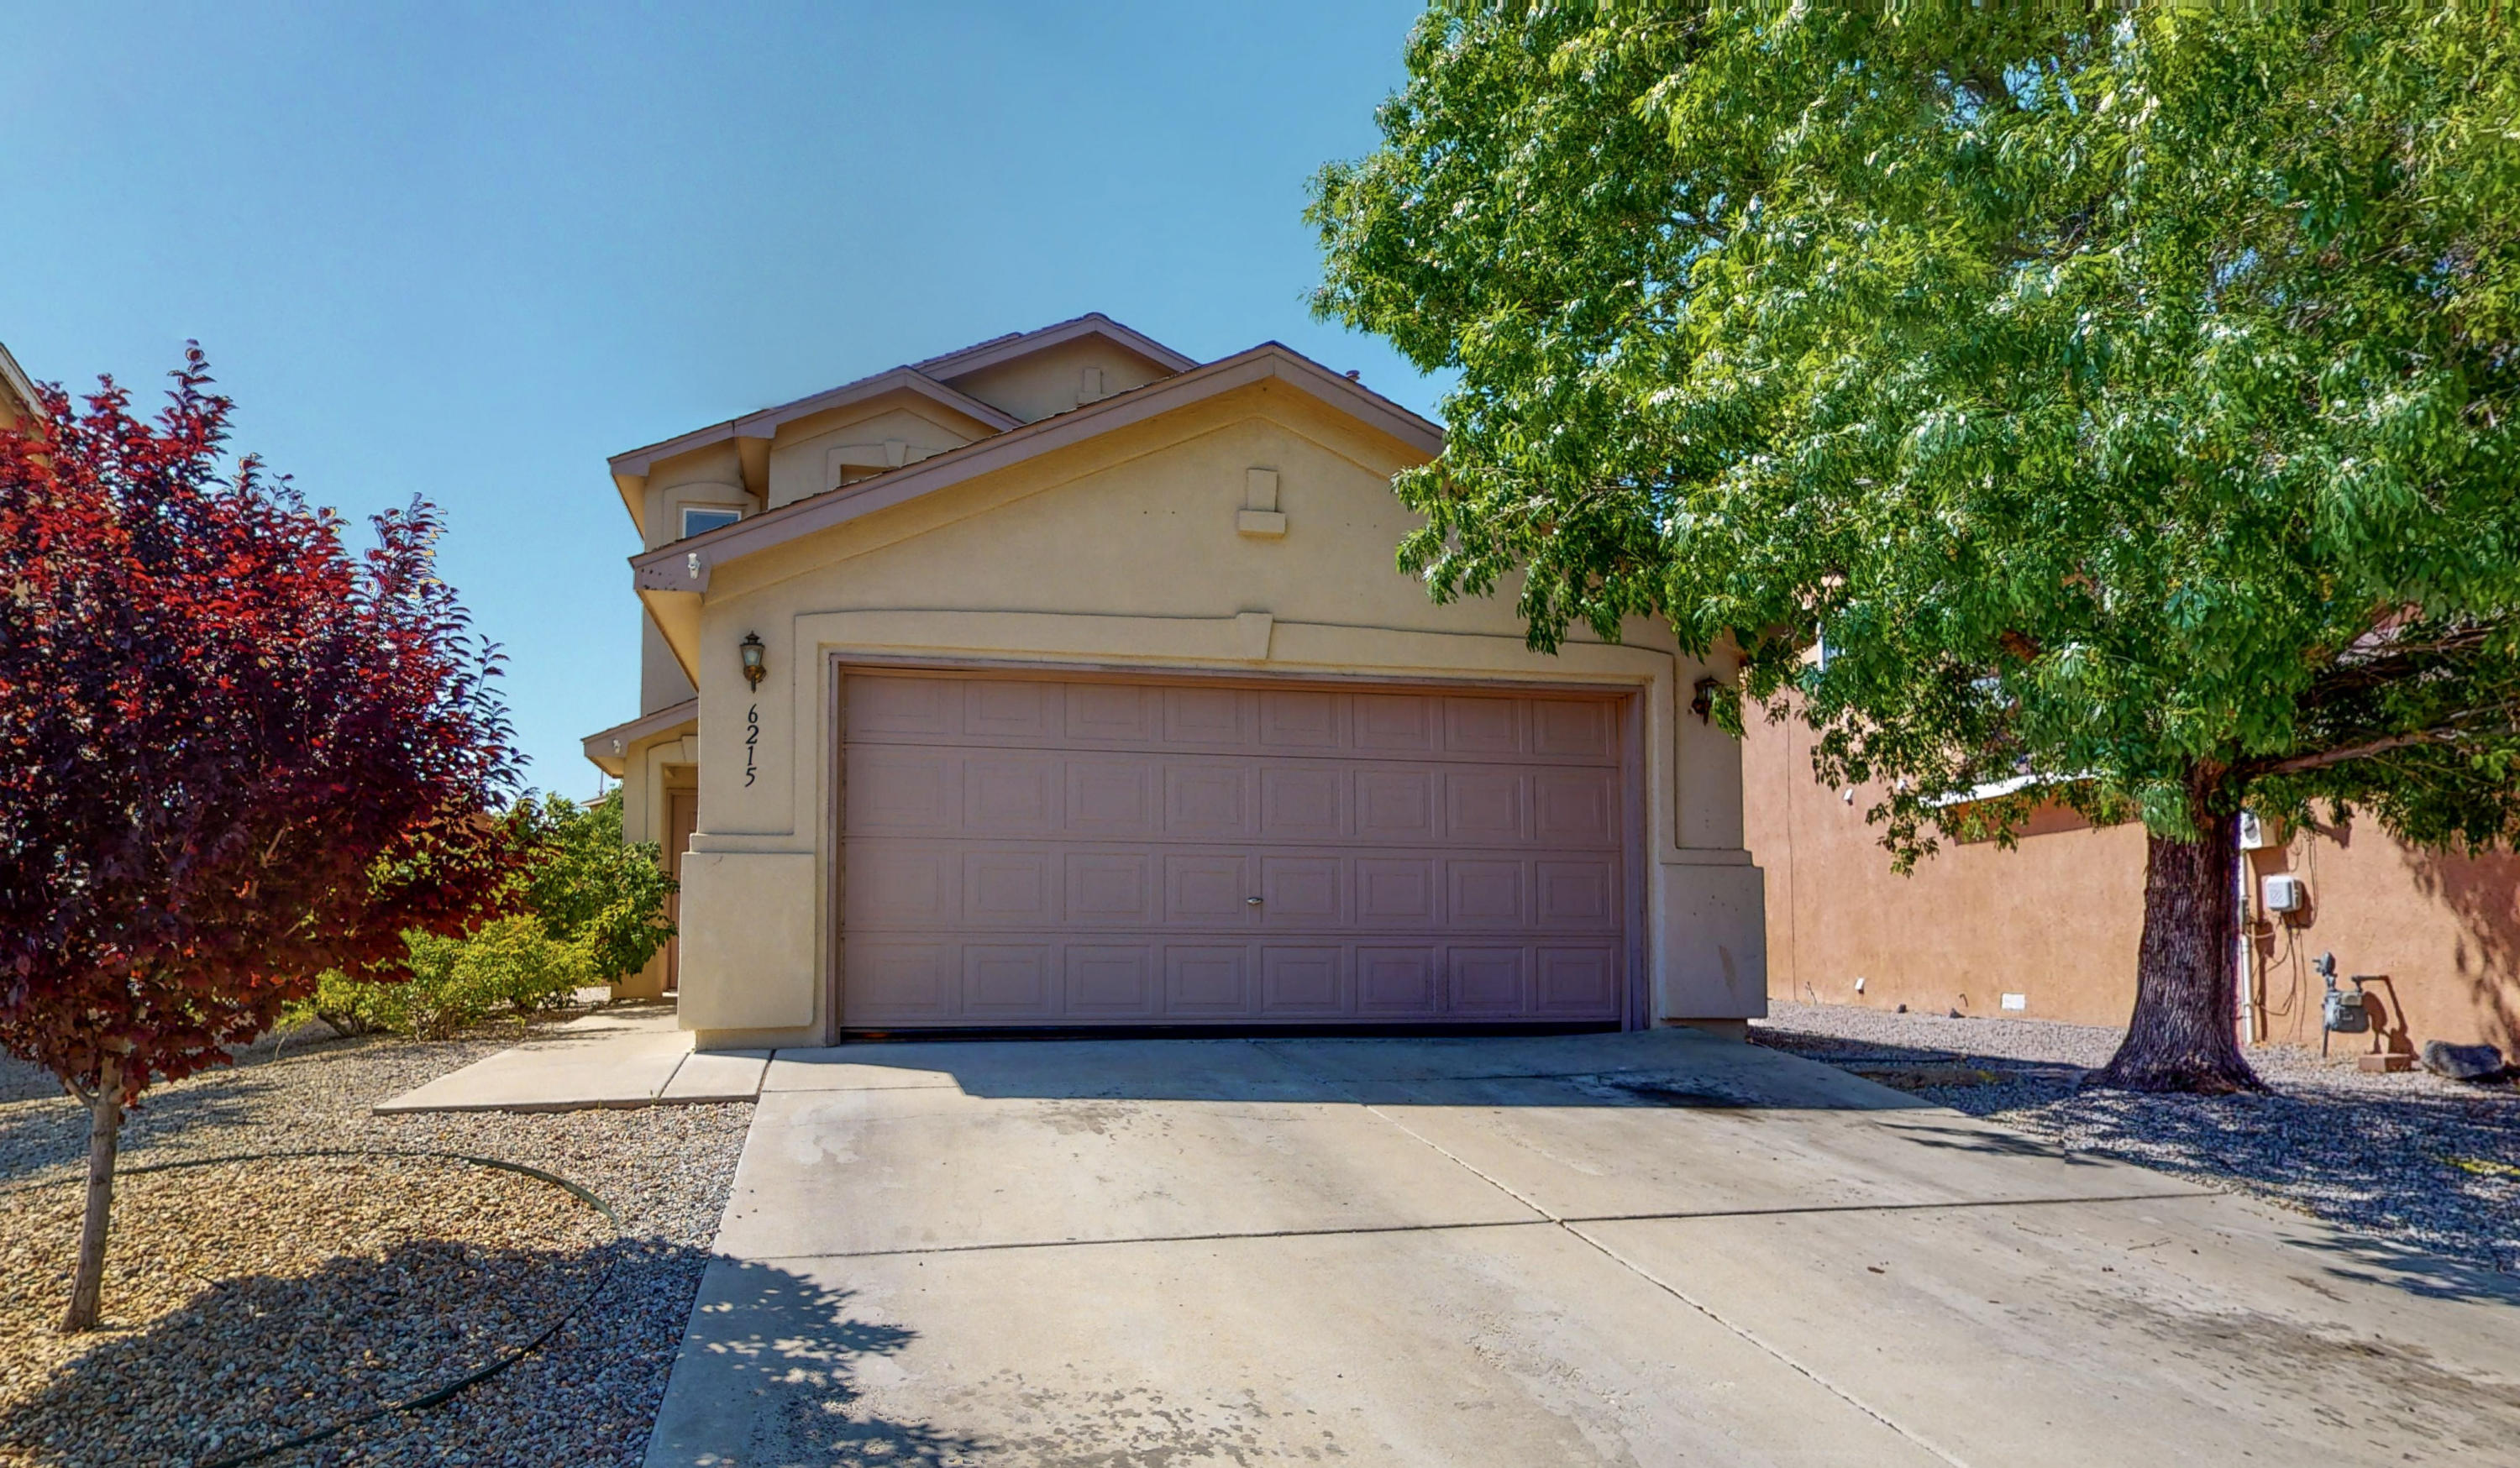 Priced to sell!  Amazing deal in highly desired Ventana Ranch.  Featuring 4 bedrooms and 3 full baths, one bedroom and full bath are located downstairs.